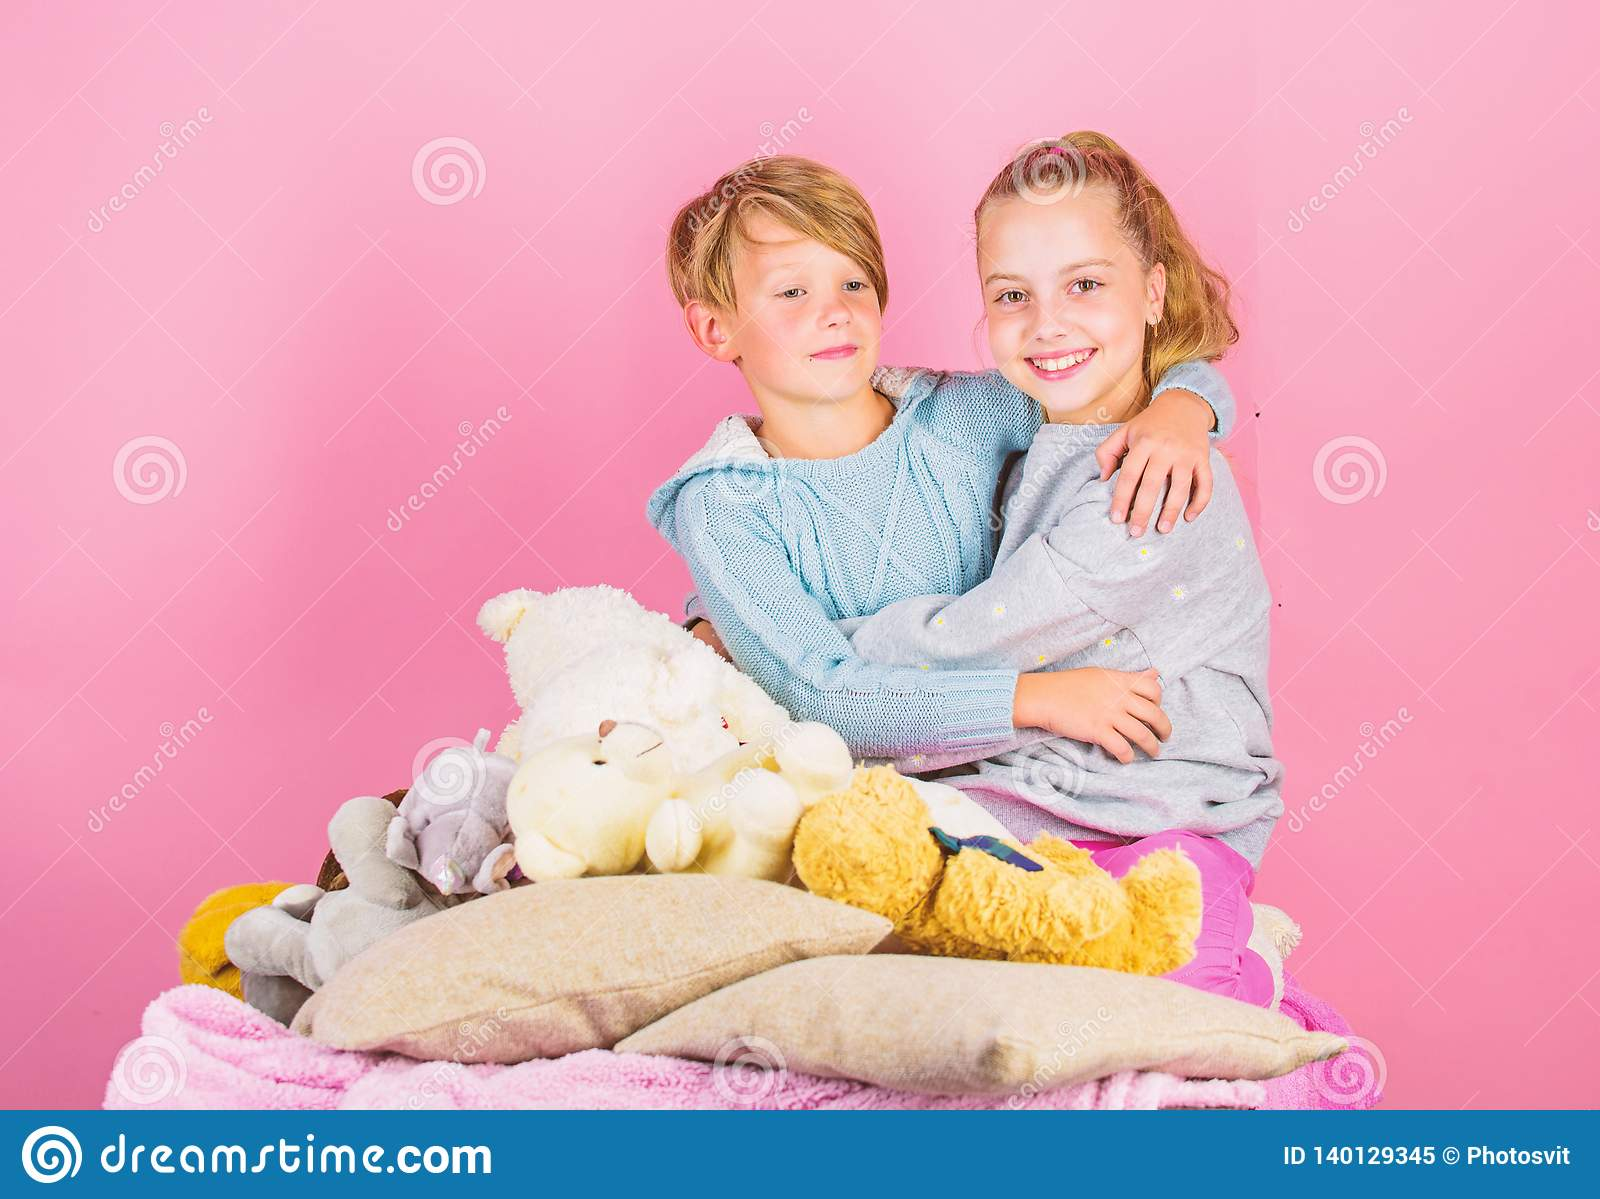 Best friends brother and sister kids siblings friends hug pink background children friends near